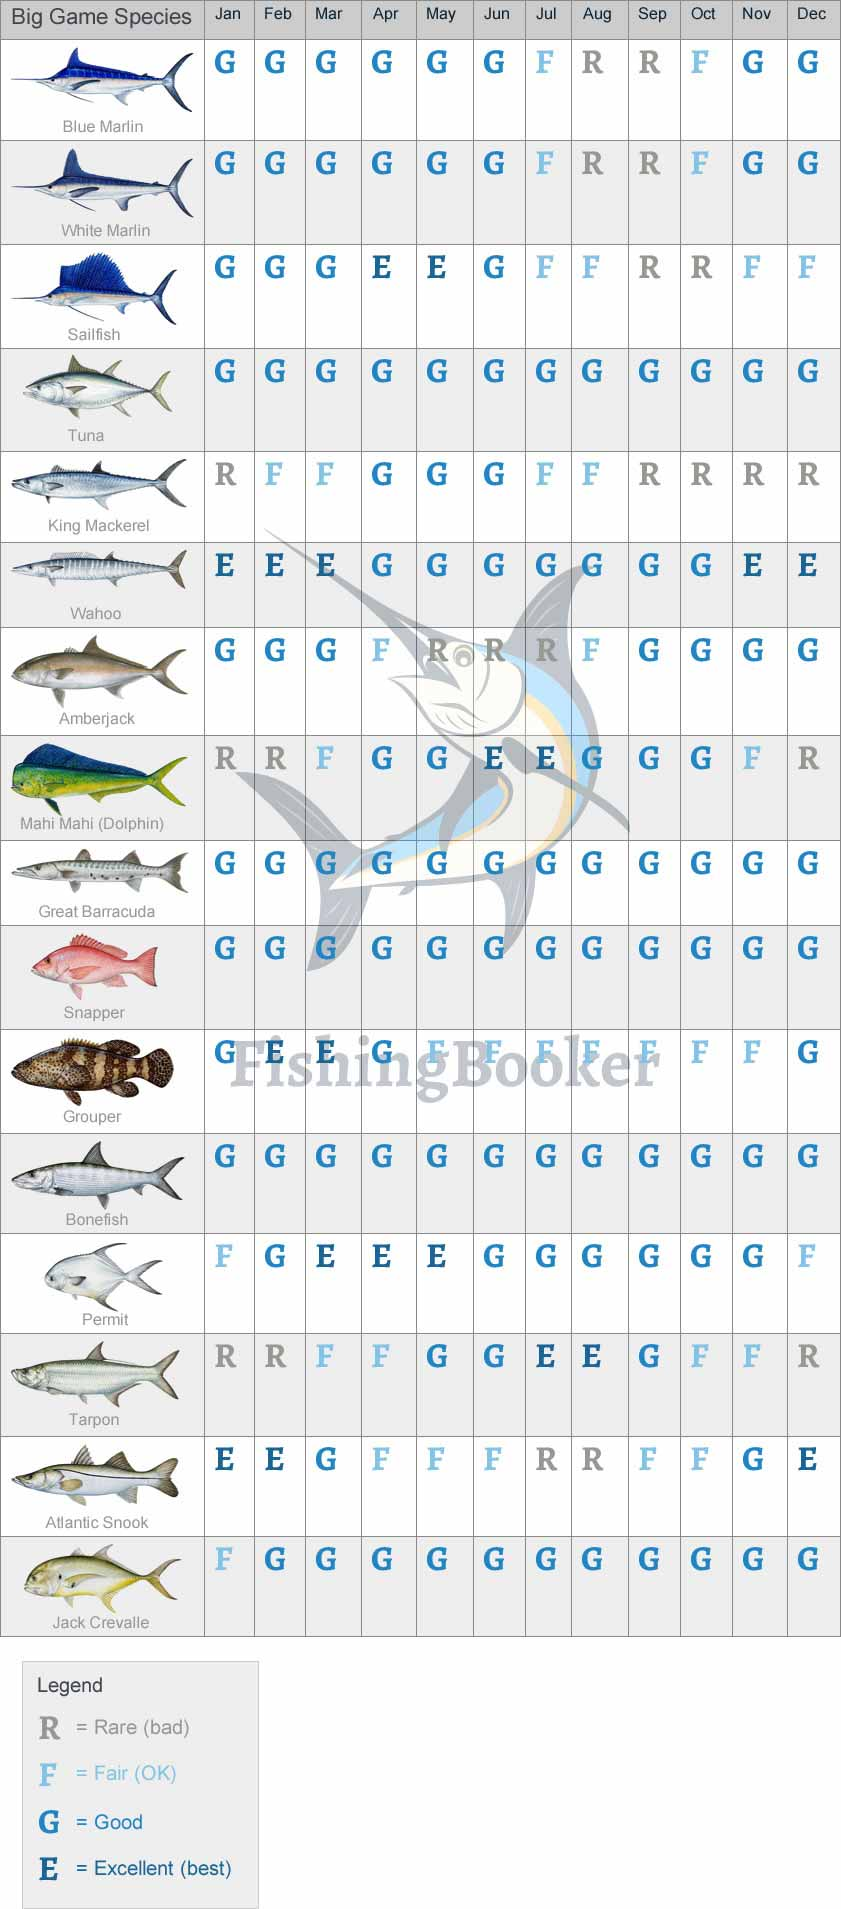 Fishing calendar for Belize